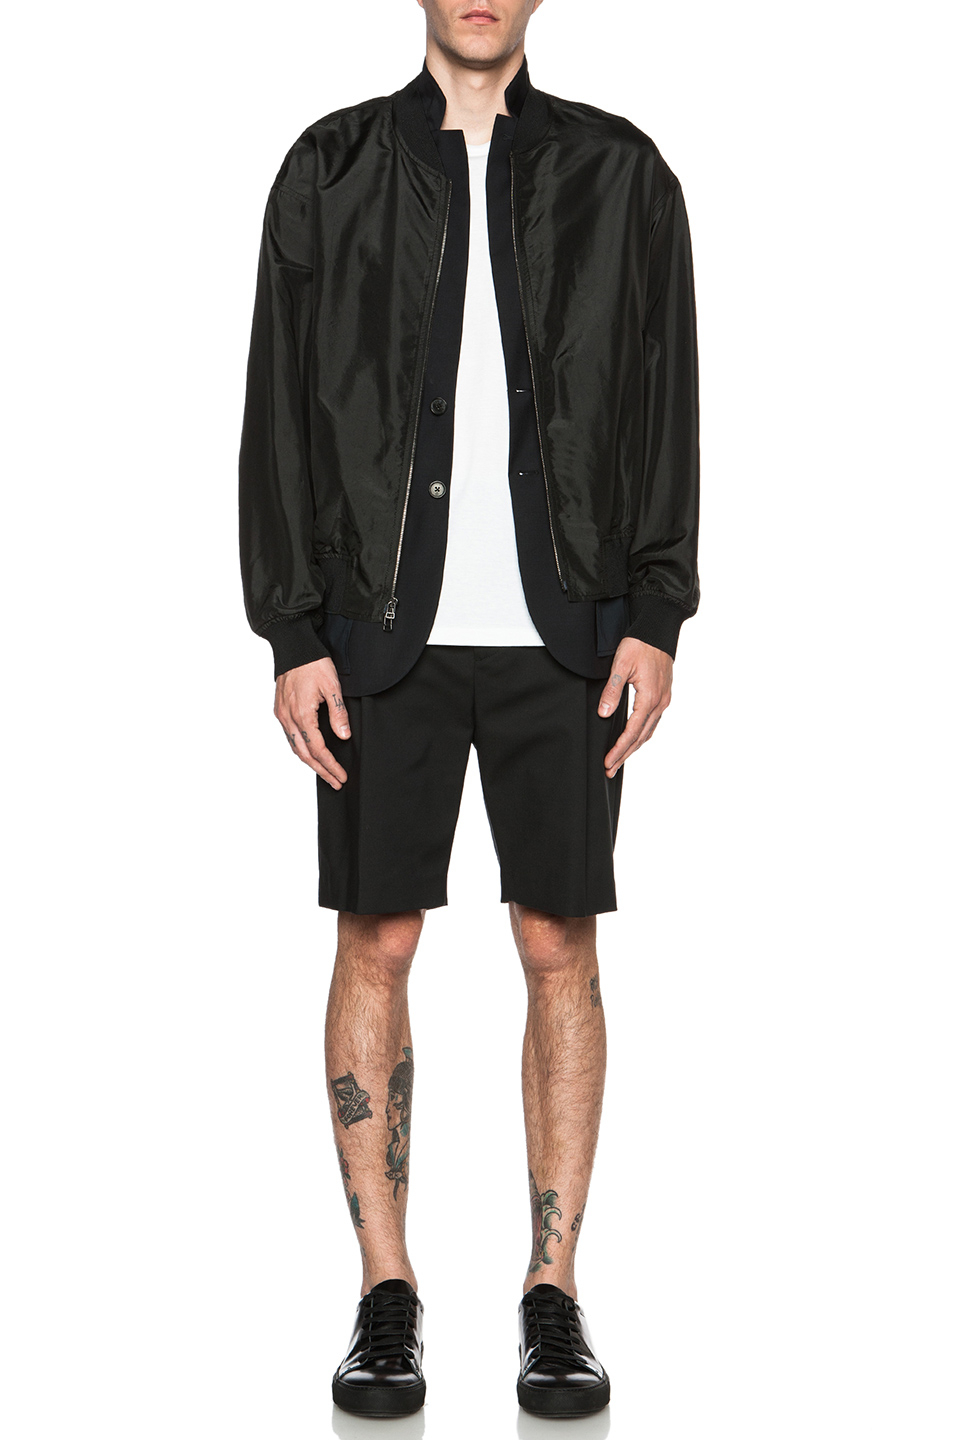 3.1 phillip lim Men'S Tromp Loeil Silk Bomber Jacket in Black | Lyst